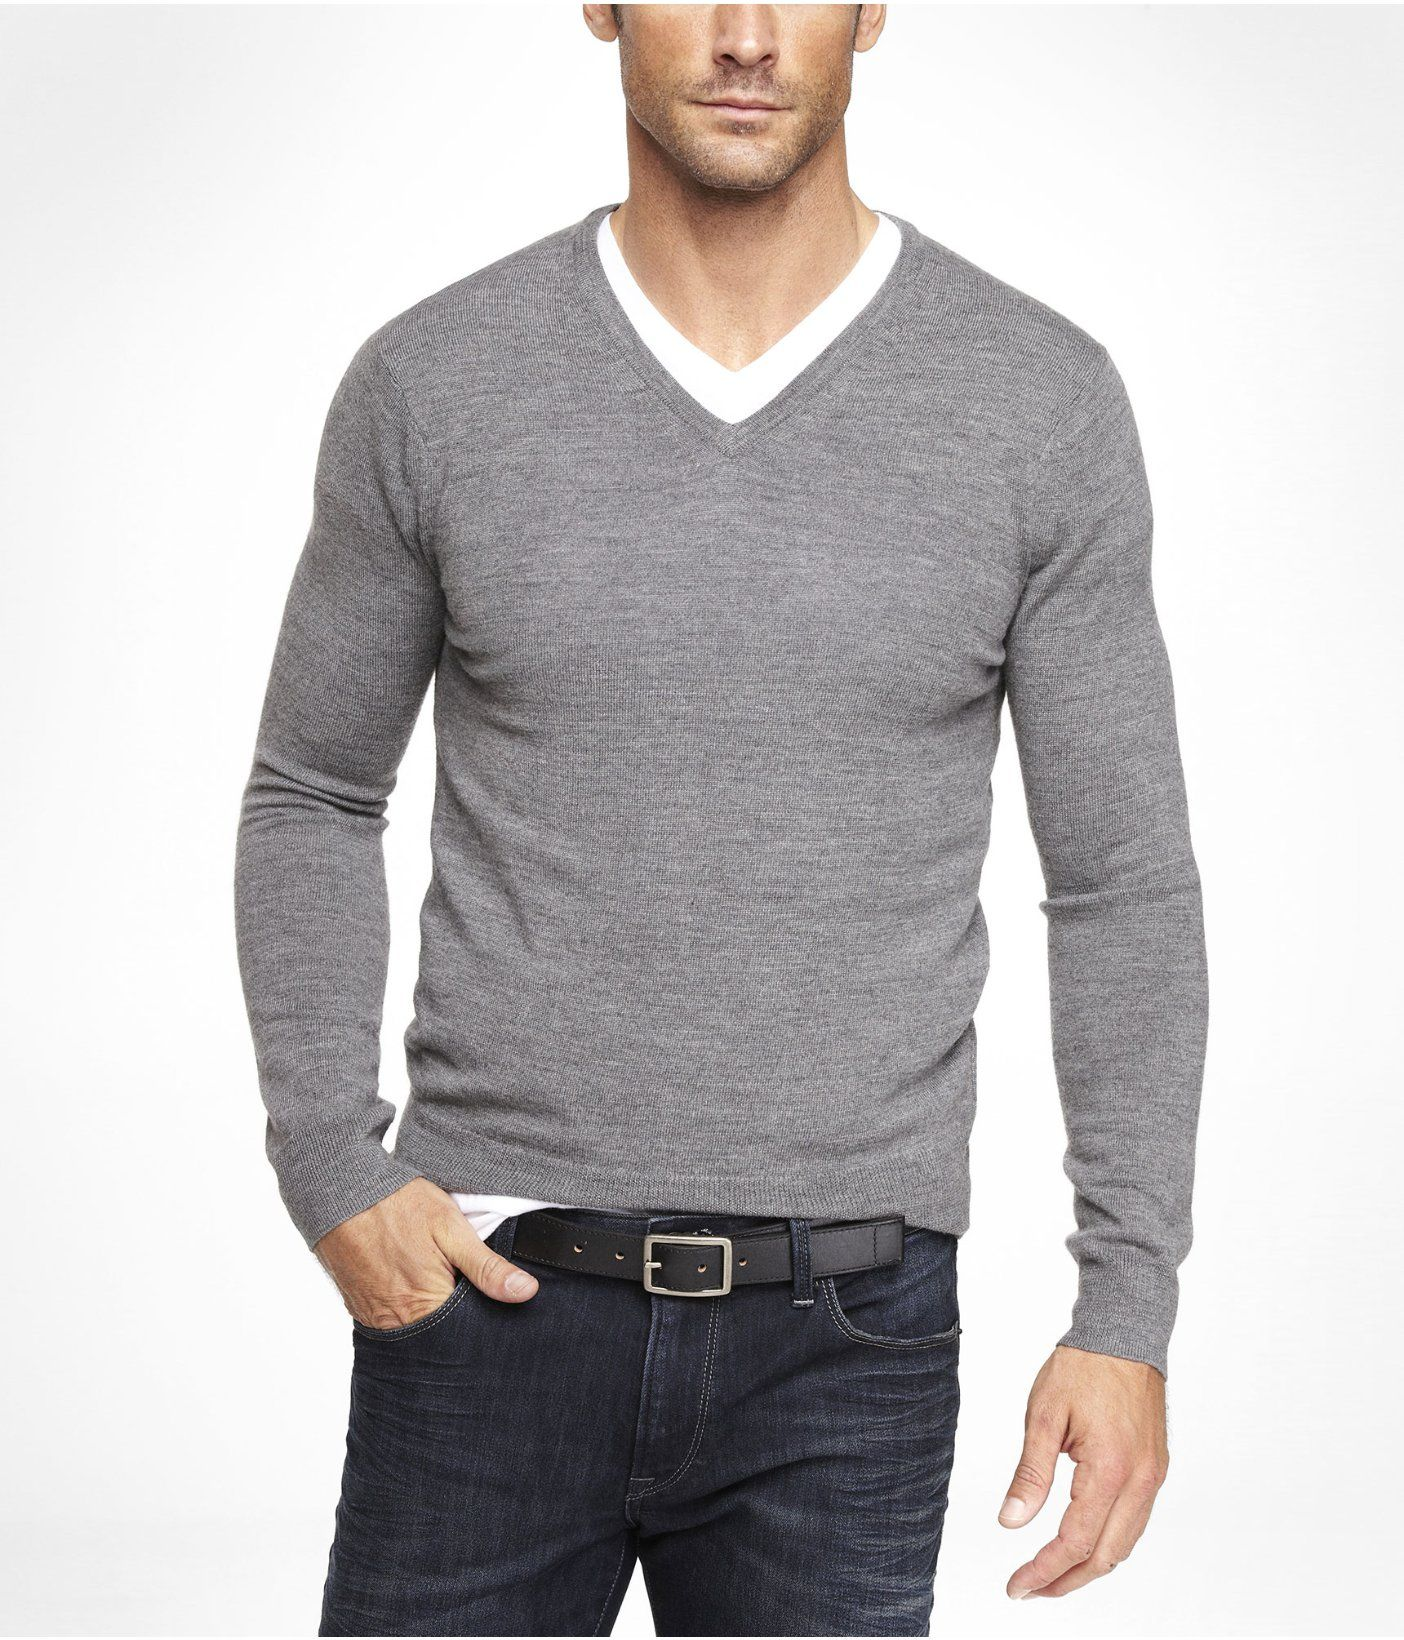 FITTED MERINO WOOL V,NECK SWEATER